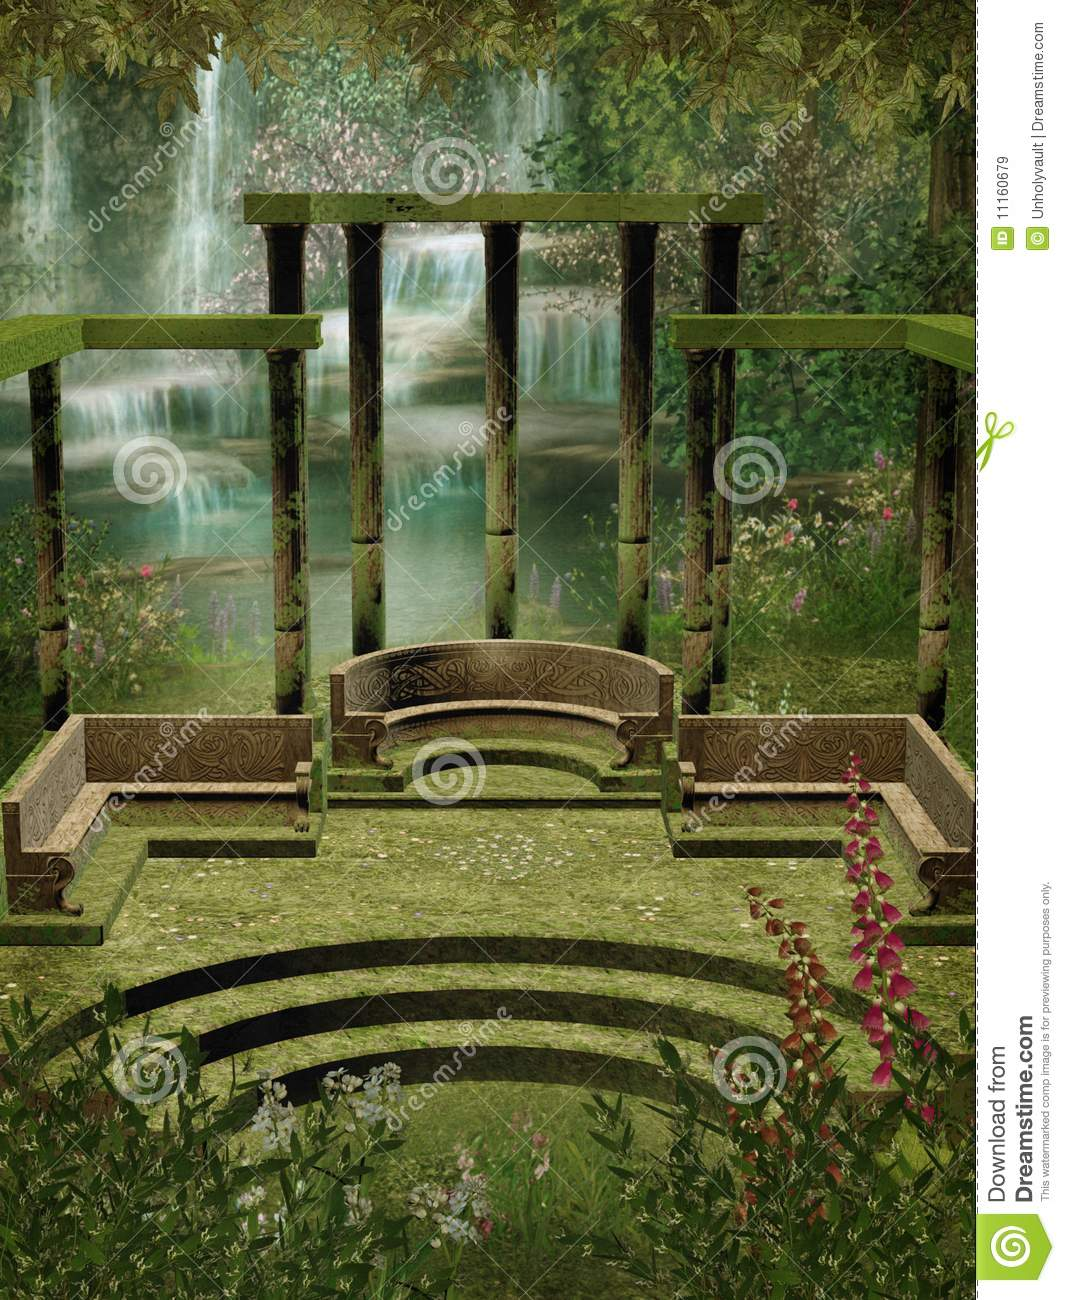 Fantasy Garden With Columns Royalty Free Stock Images Image